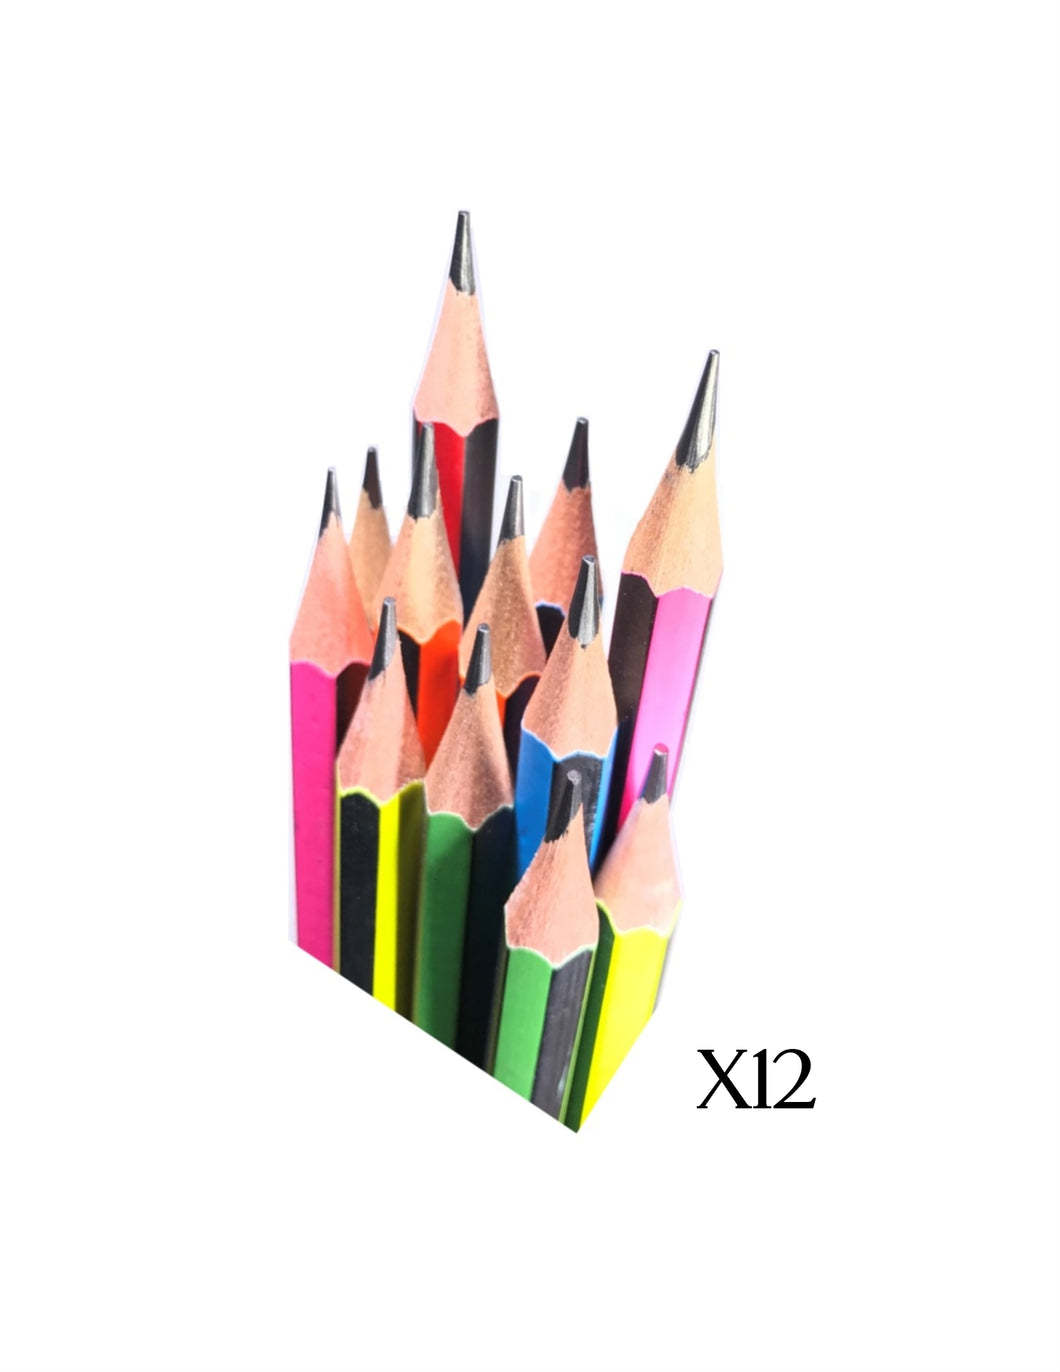 Yalong HB Lead Pencils | 12 Pencils (Single Pack)